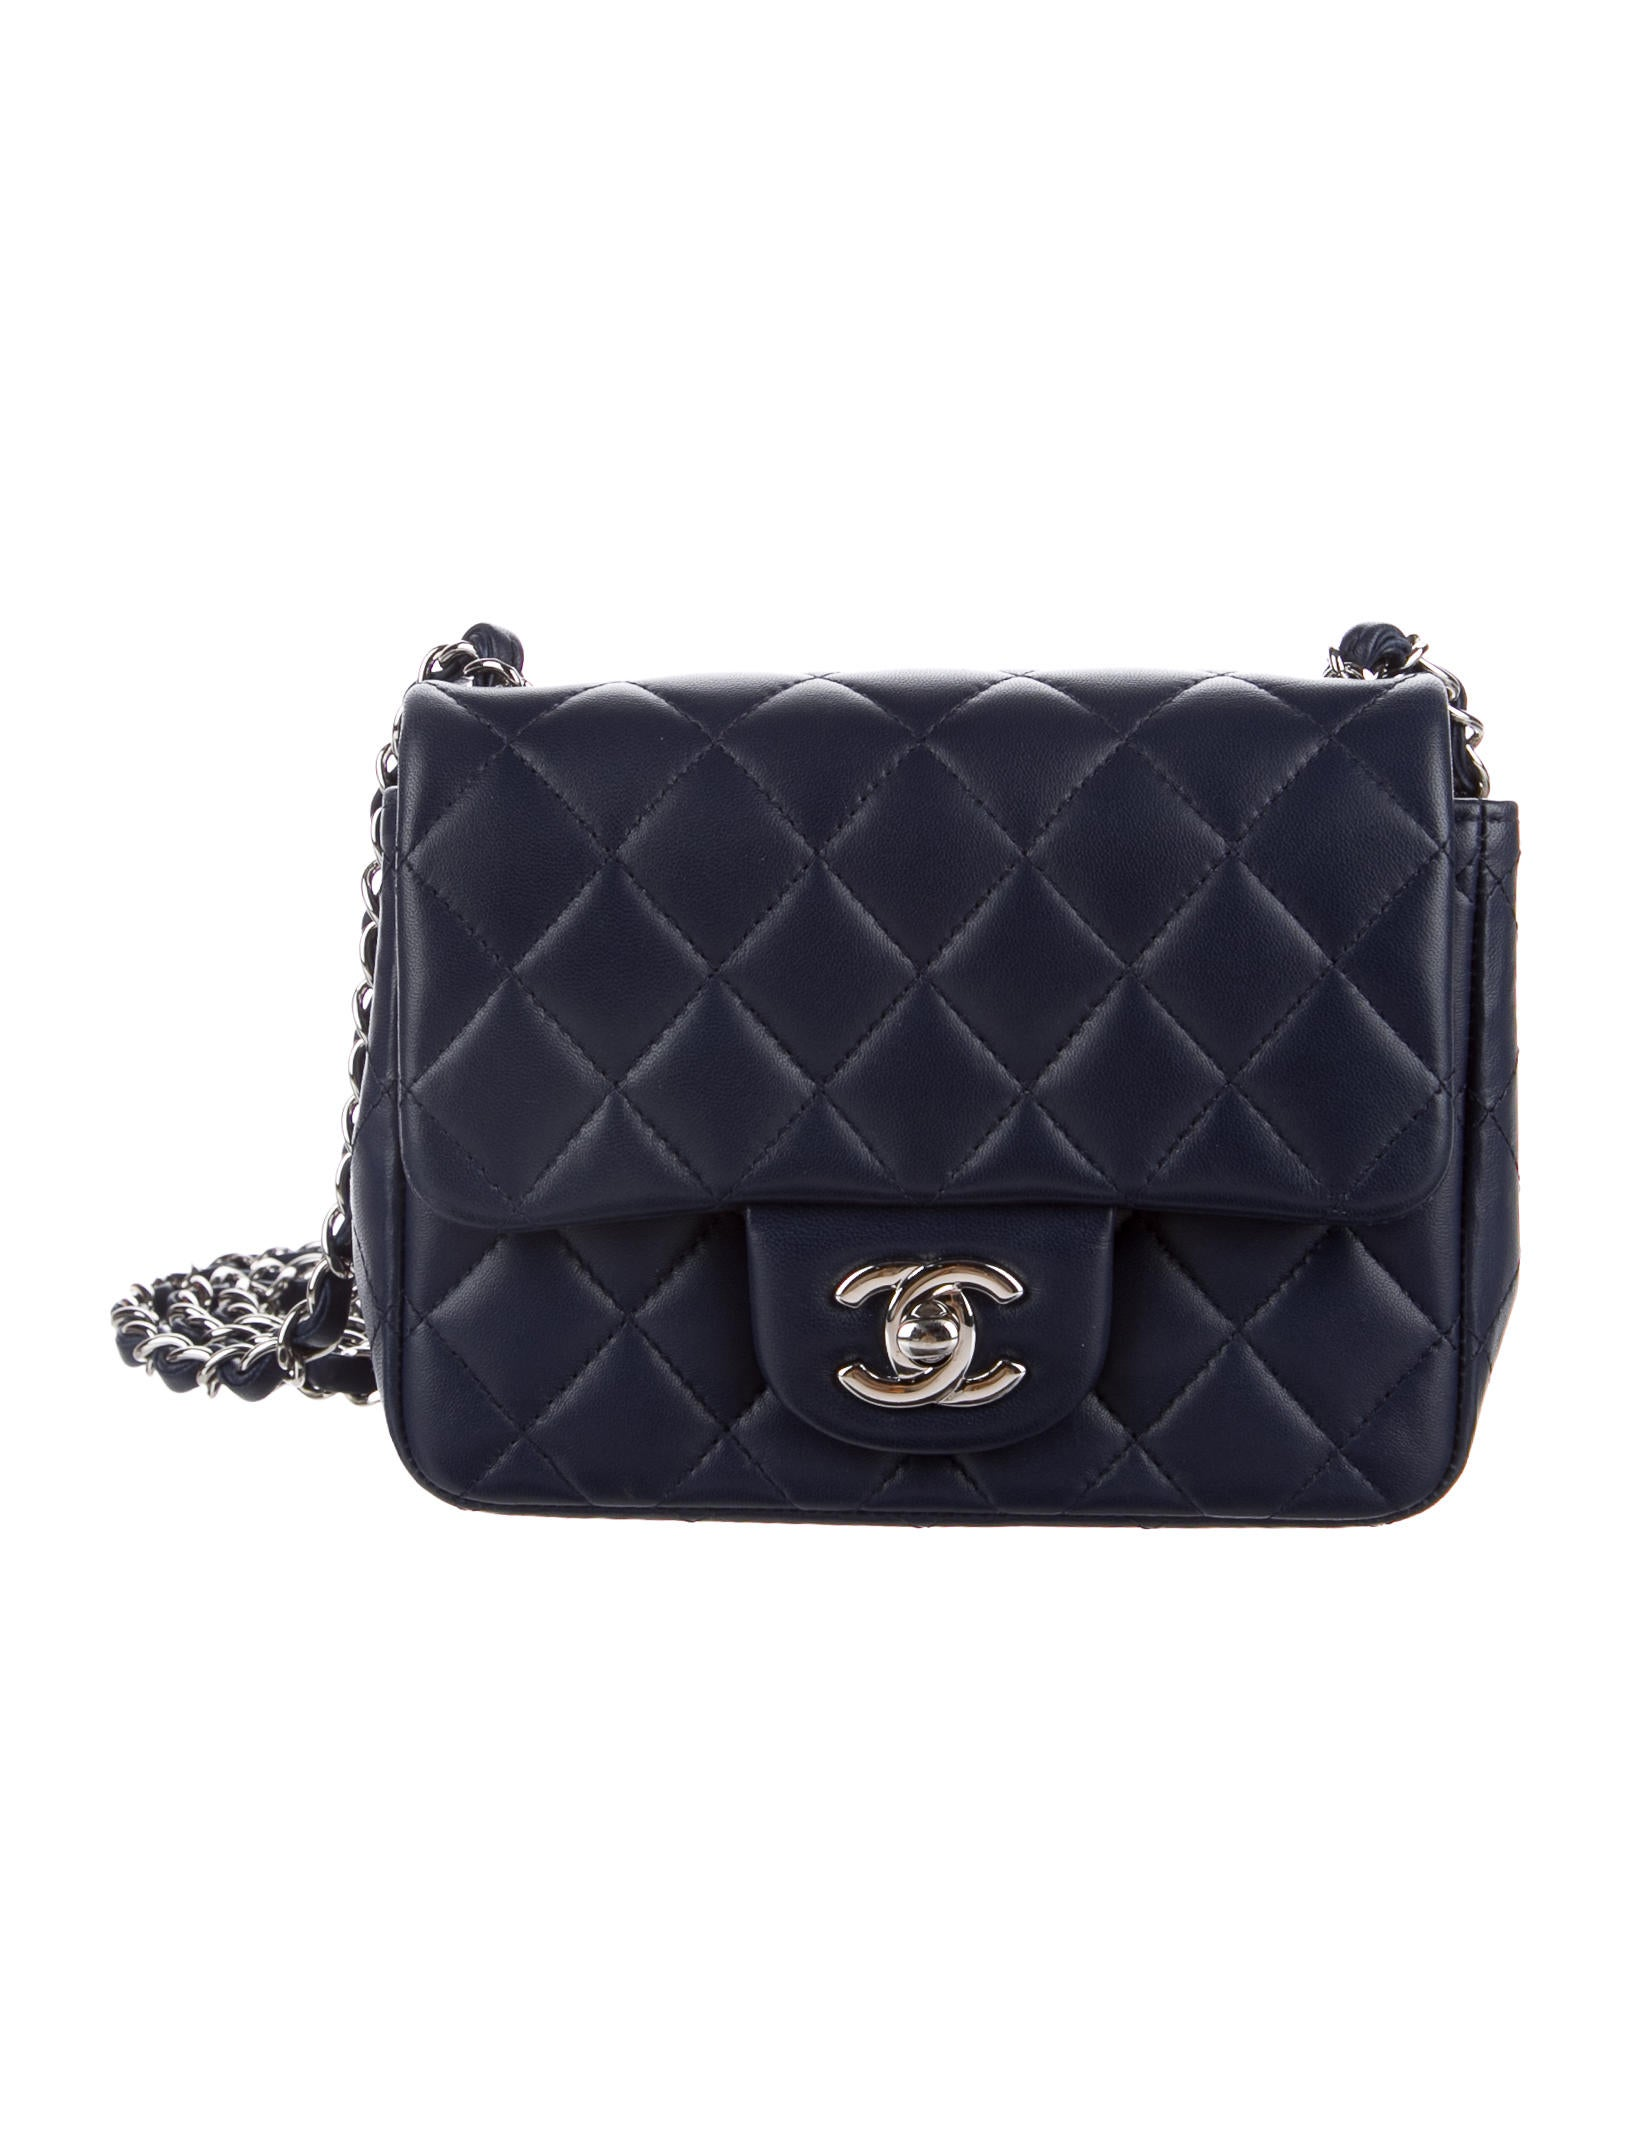 ed448d949 Chanel Classic Mini Square Flap Bag | Stanford Center for ...